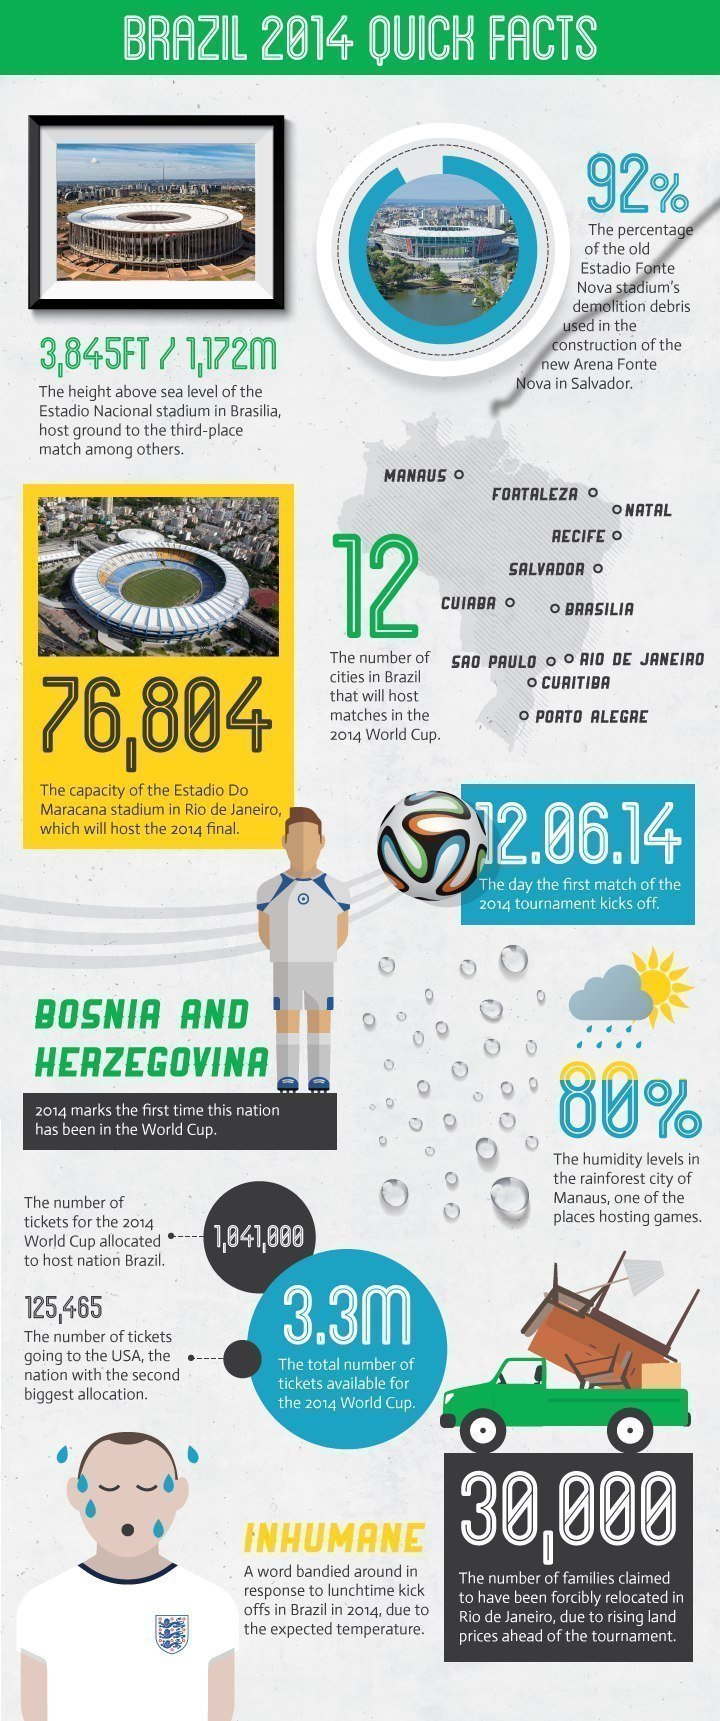 Brazil 2014 Quick Facts